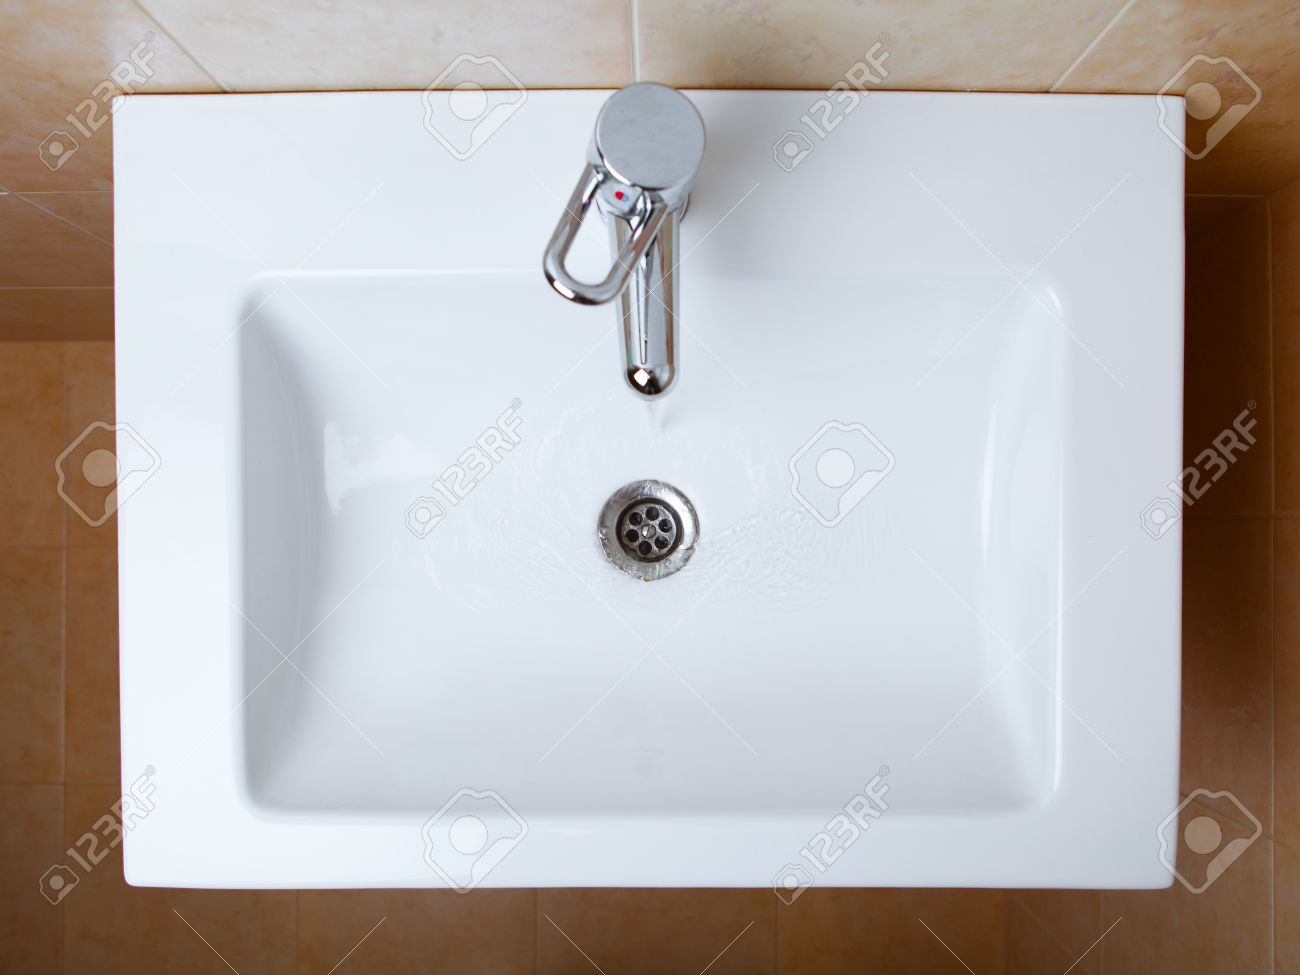 Bathroom sink top view - Stock Photo Wash Sink In A Bathroom Top View